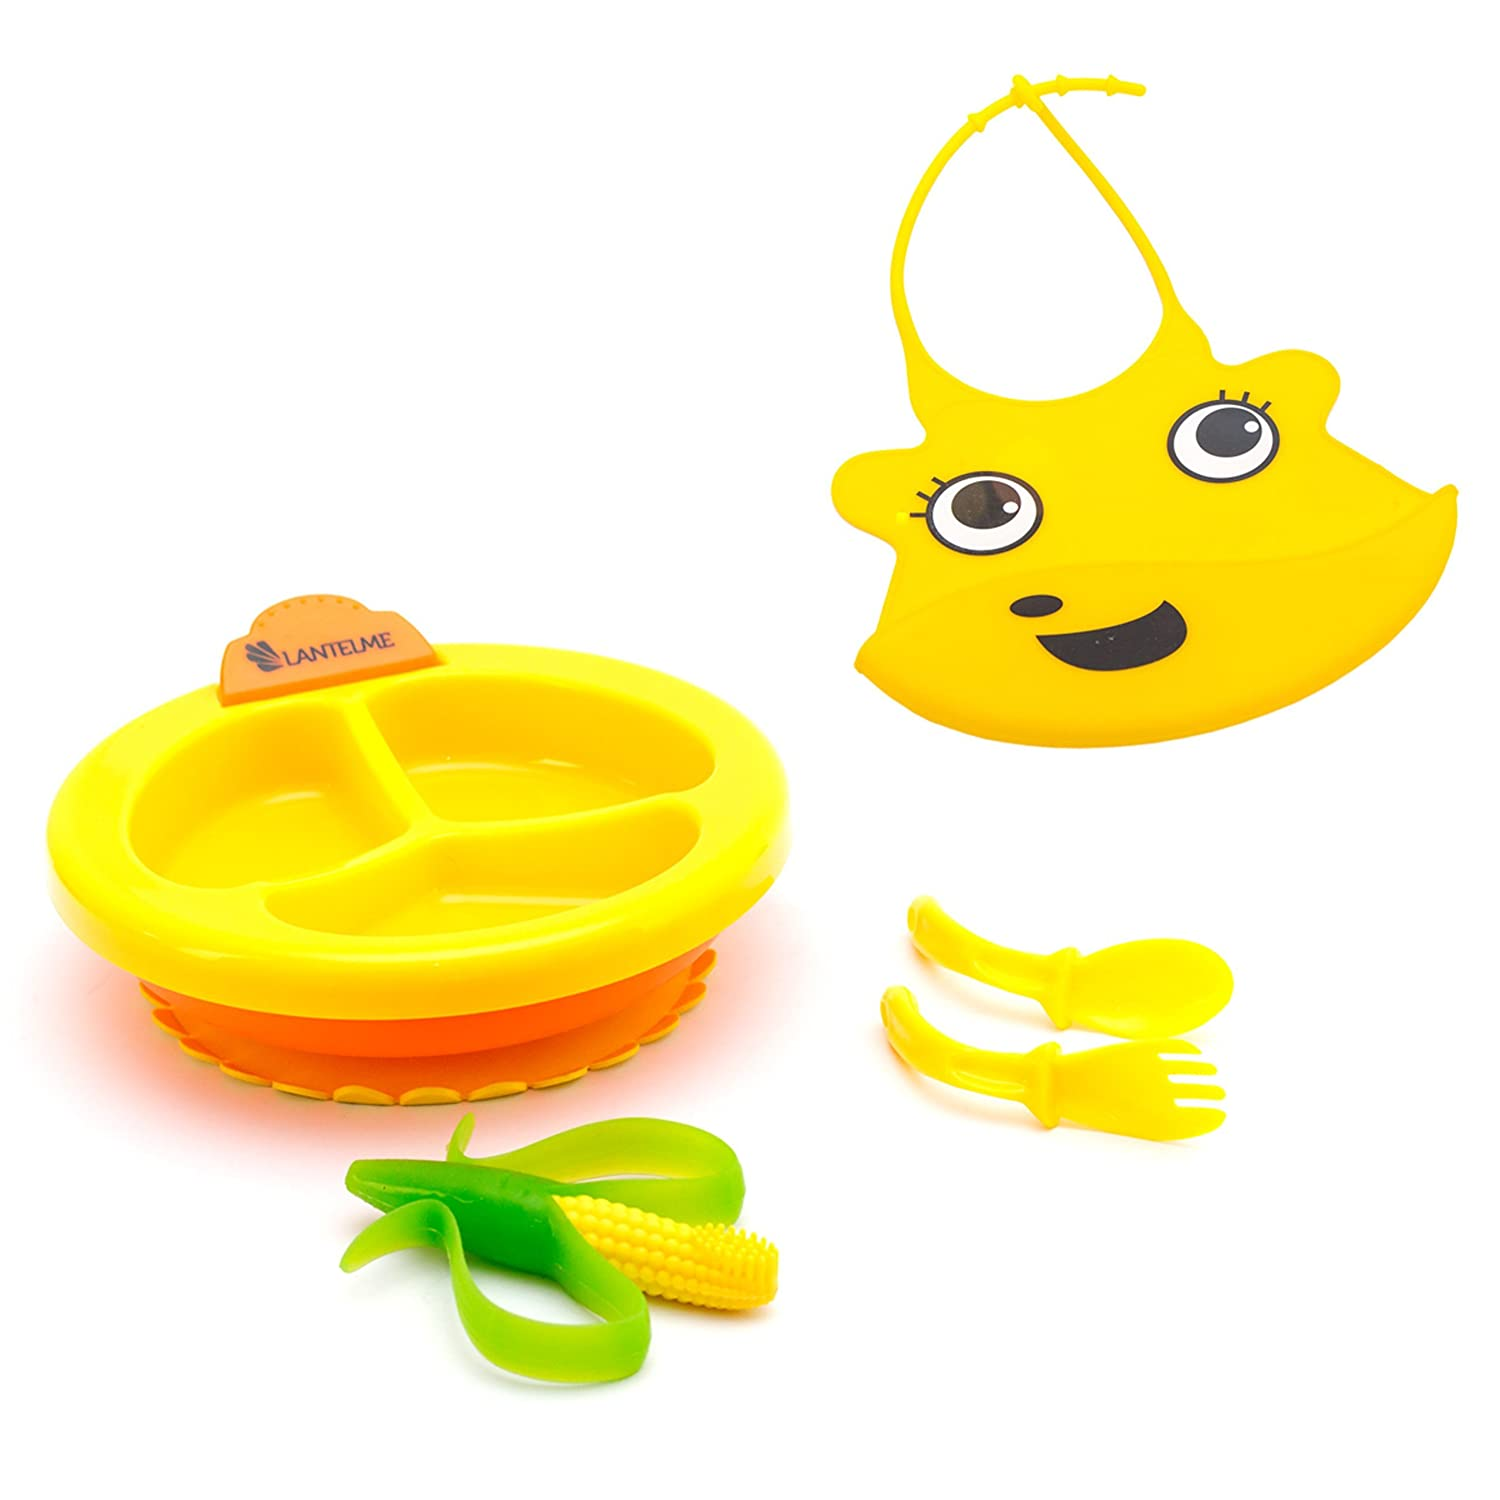 Lantelme 5802 Baby Bib and Feeding Bowl Set with Cutlery and Teether. Warming Plate and Bib Yellow